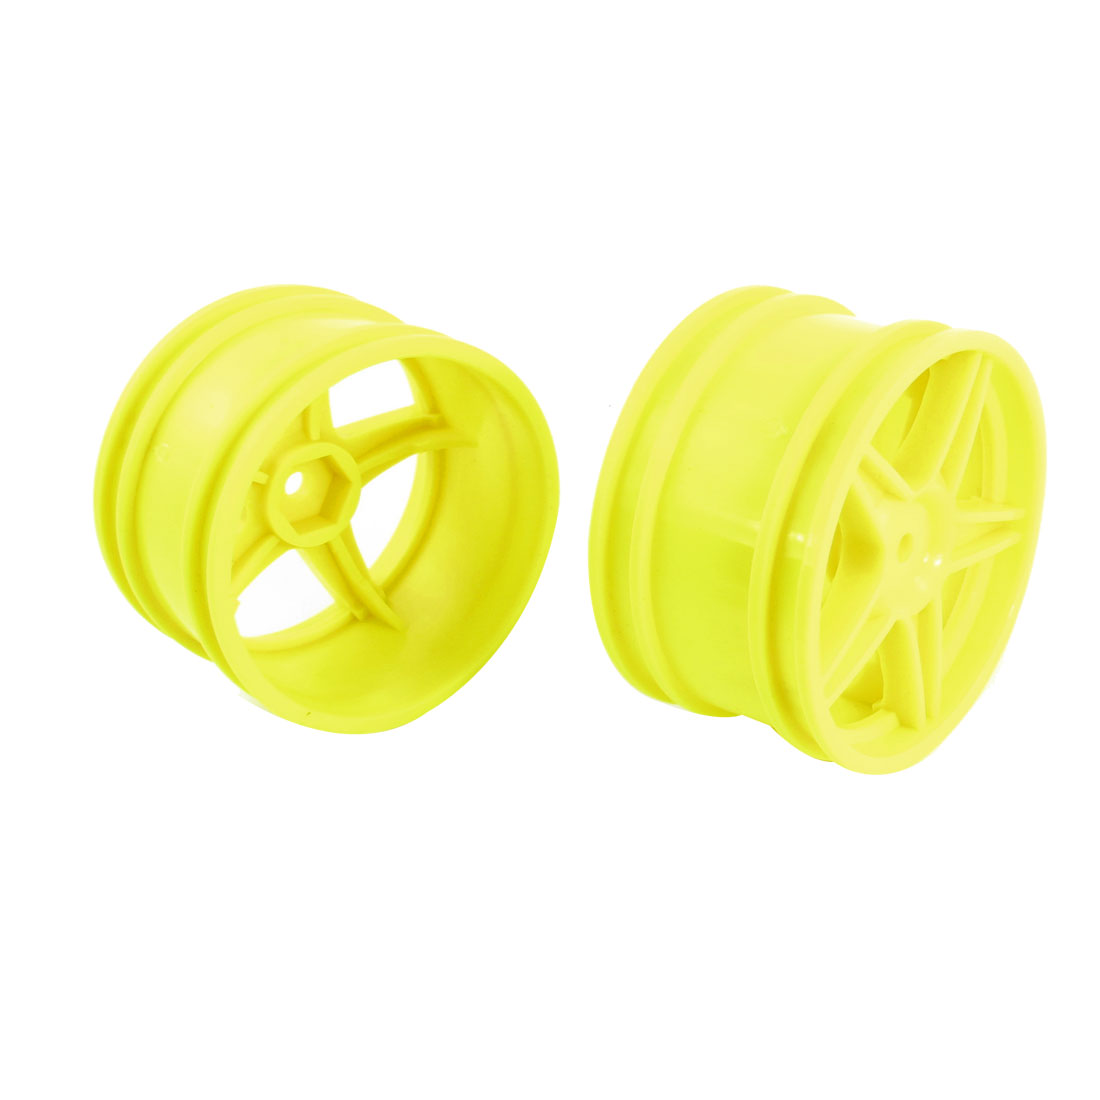 2 Pcs 06024 Plastic Rear Wheel Rim Yellow for 1/10 Buggy Racing Car